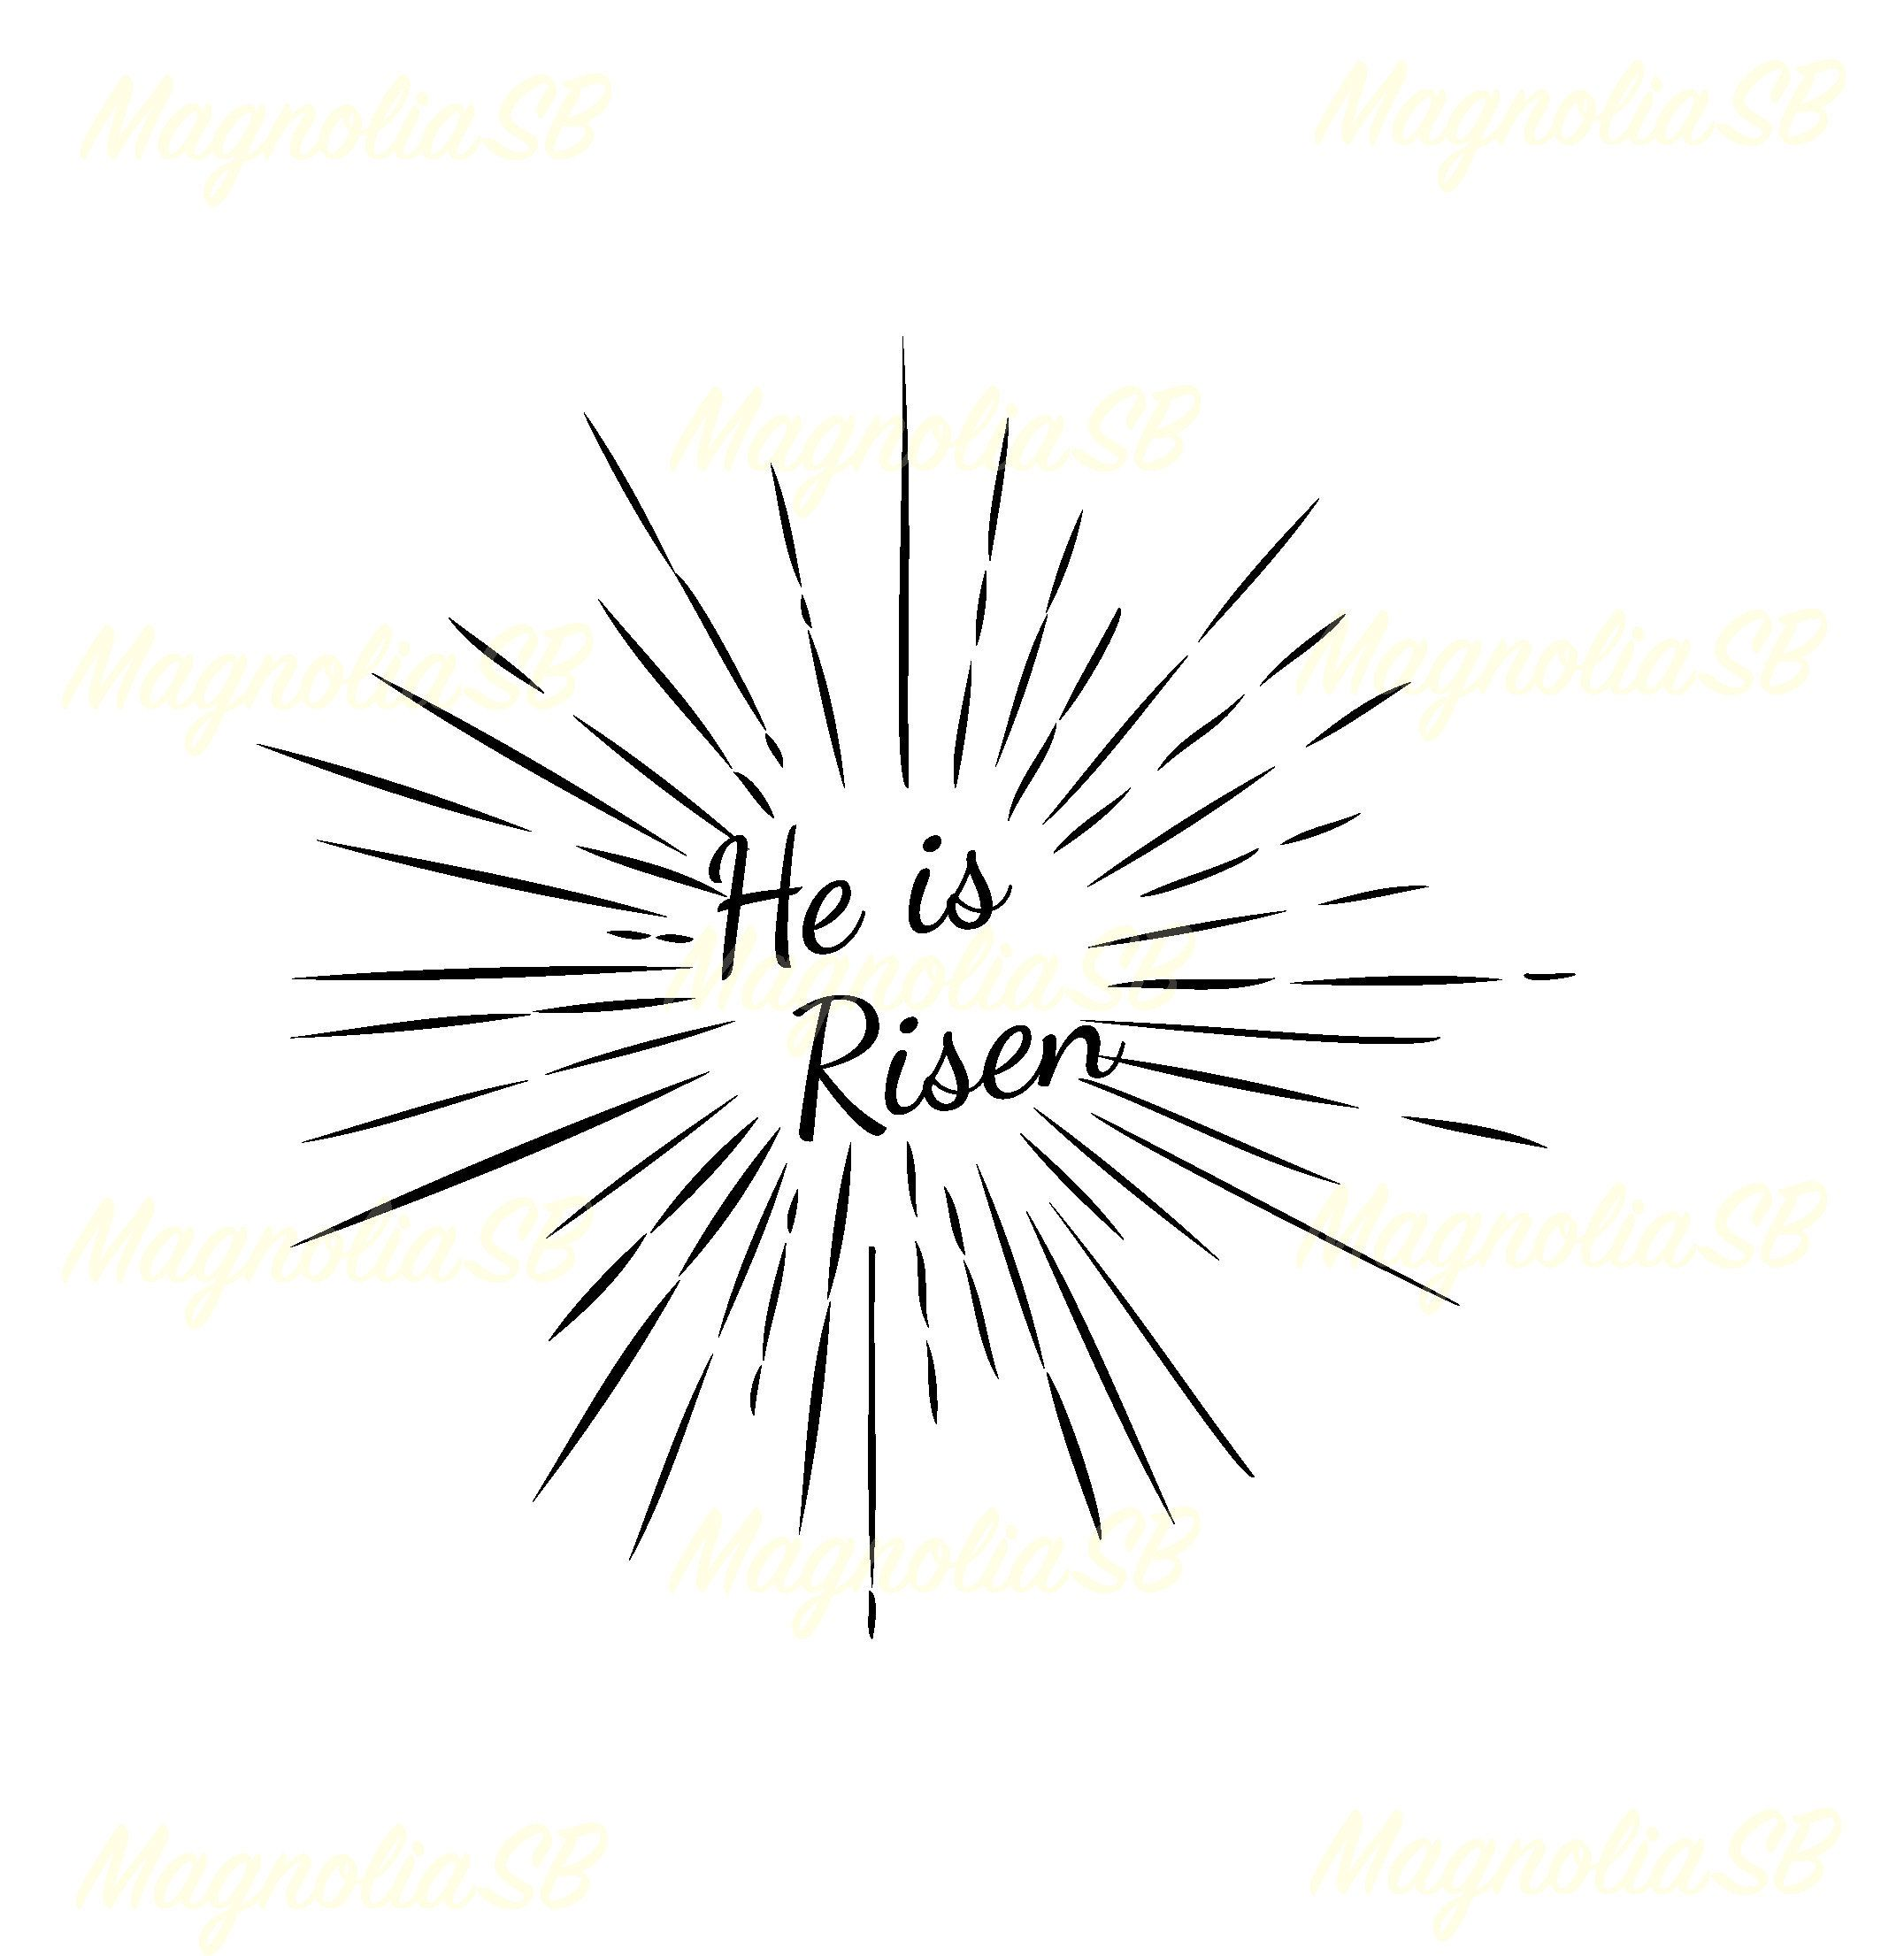 he is risen svg he is risen dxf he is risen clipart cutting he is risen vector he is risen shape easter rays he is risen silhouette [ 2152 x 2211 Pixel ]